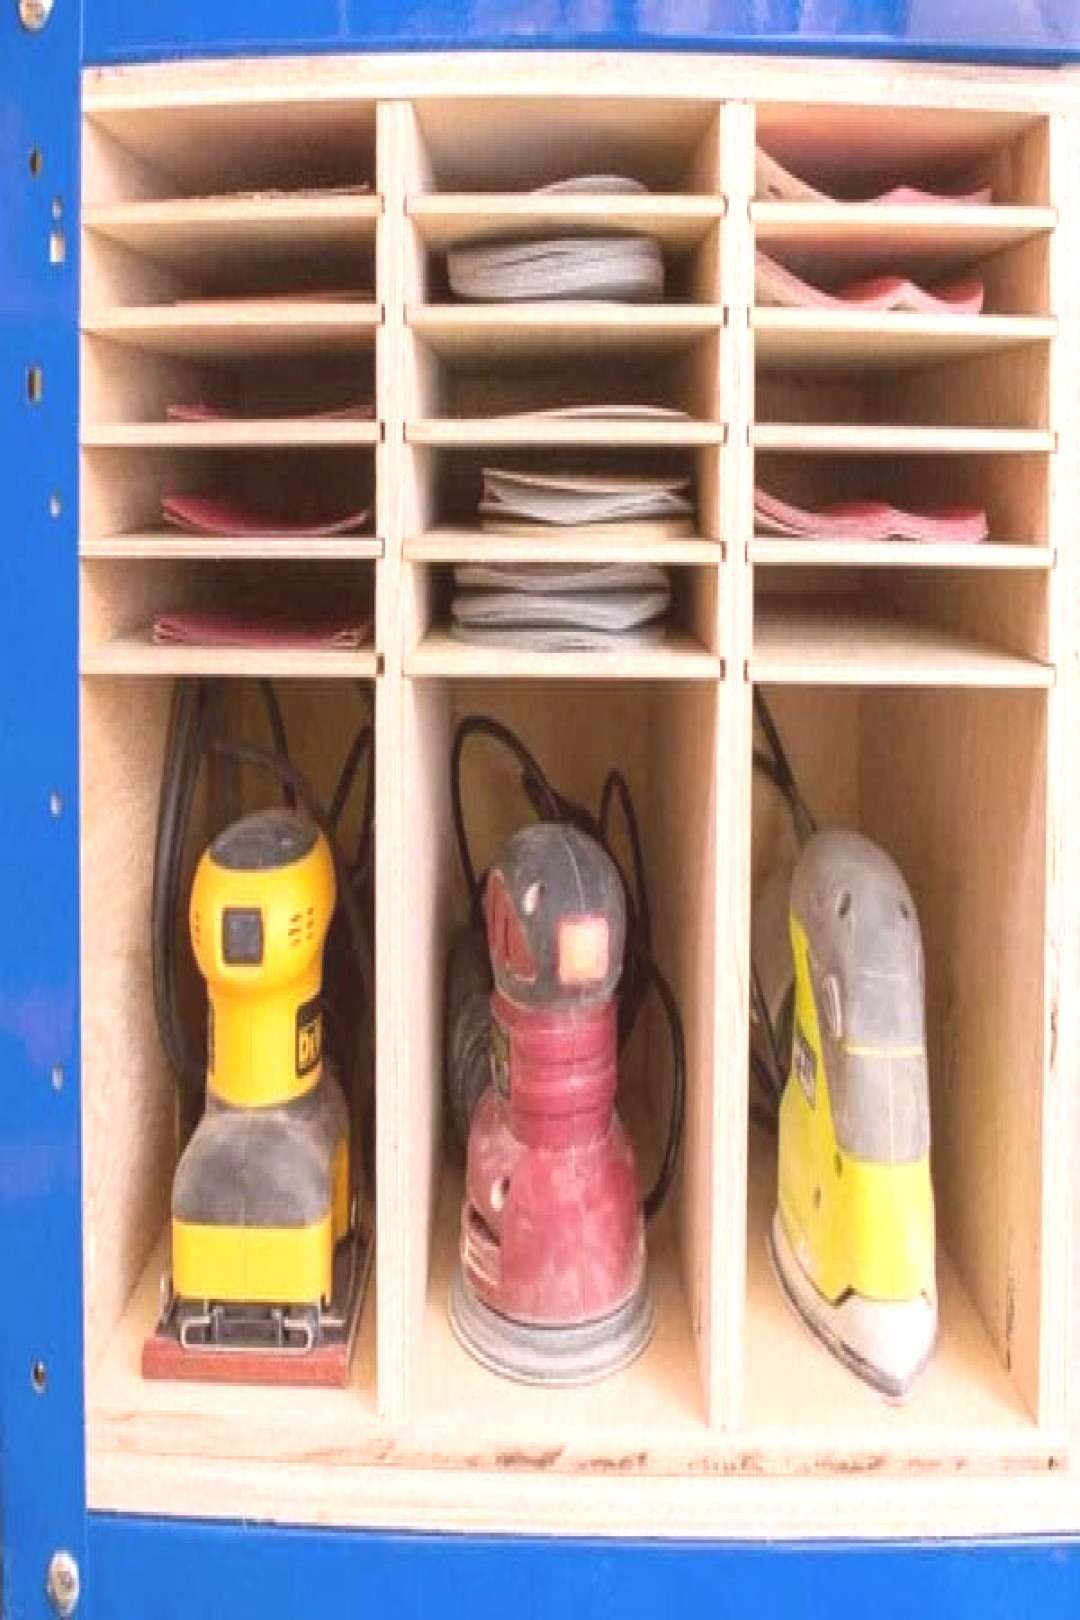 Genius tool organization ideas - whether your workshop is in your garage or if you have a dedicated